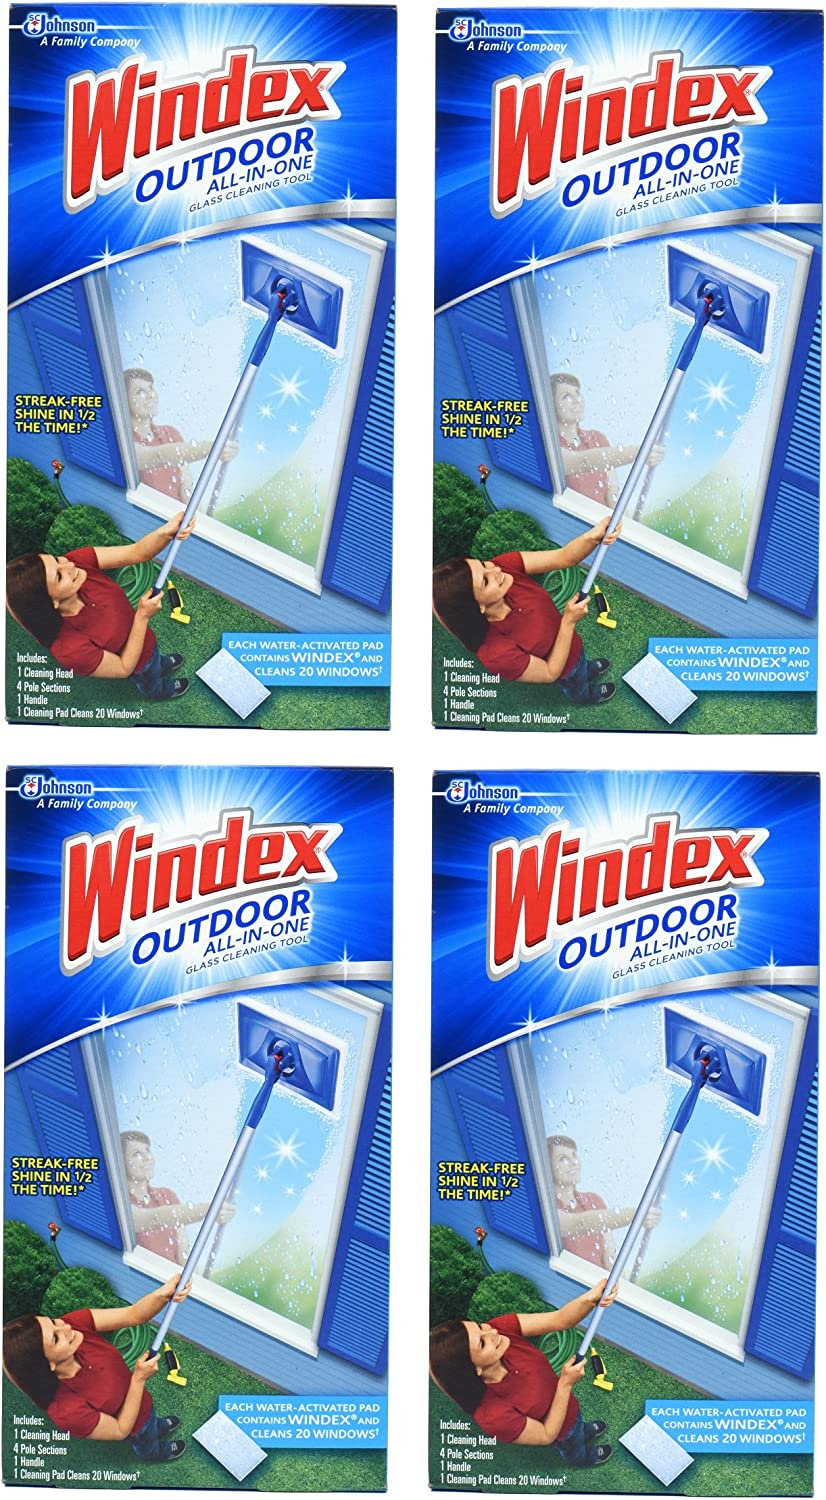 Windex Outdoor All-in One Glass Cleaning Tool Starter Kit (Packf of 4) Made in USA